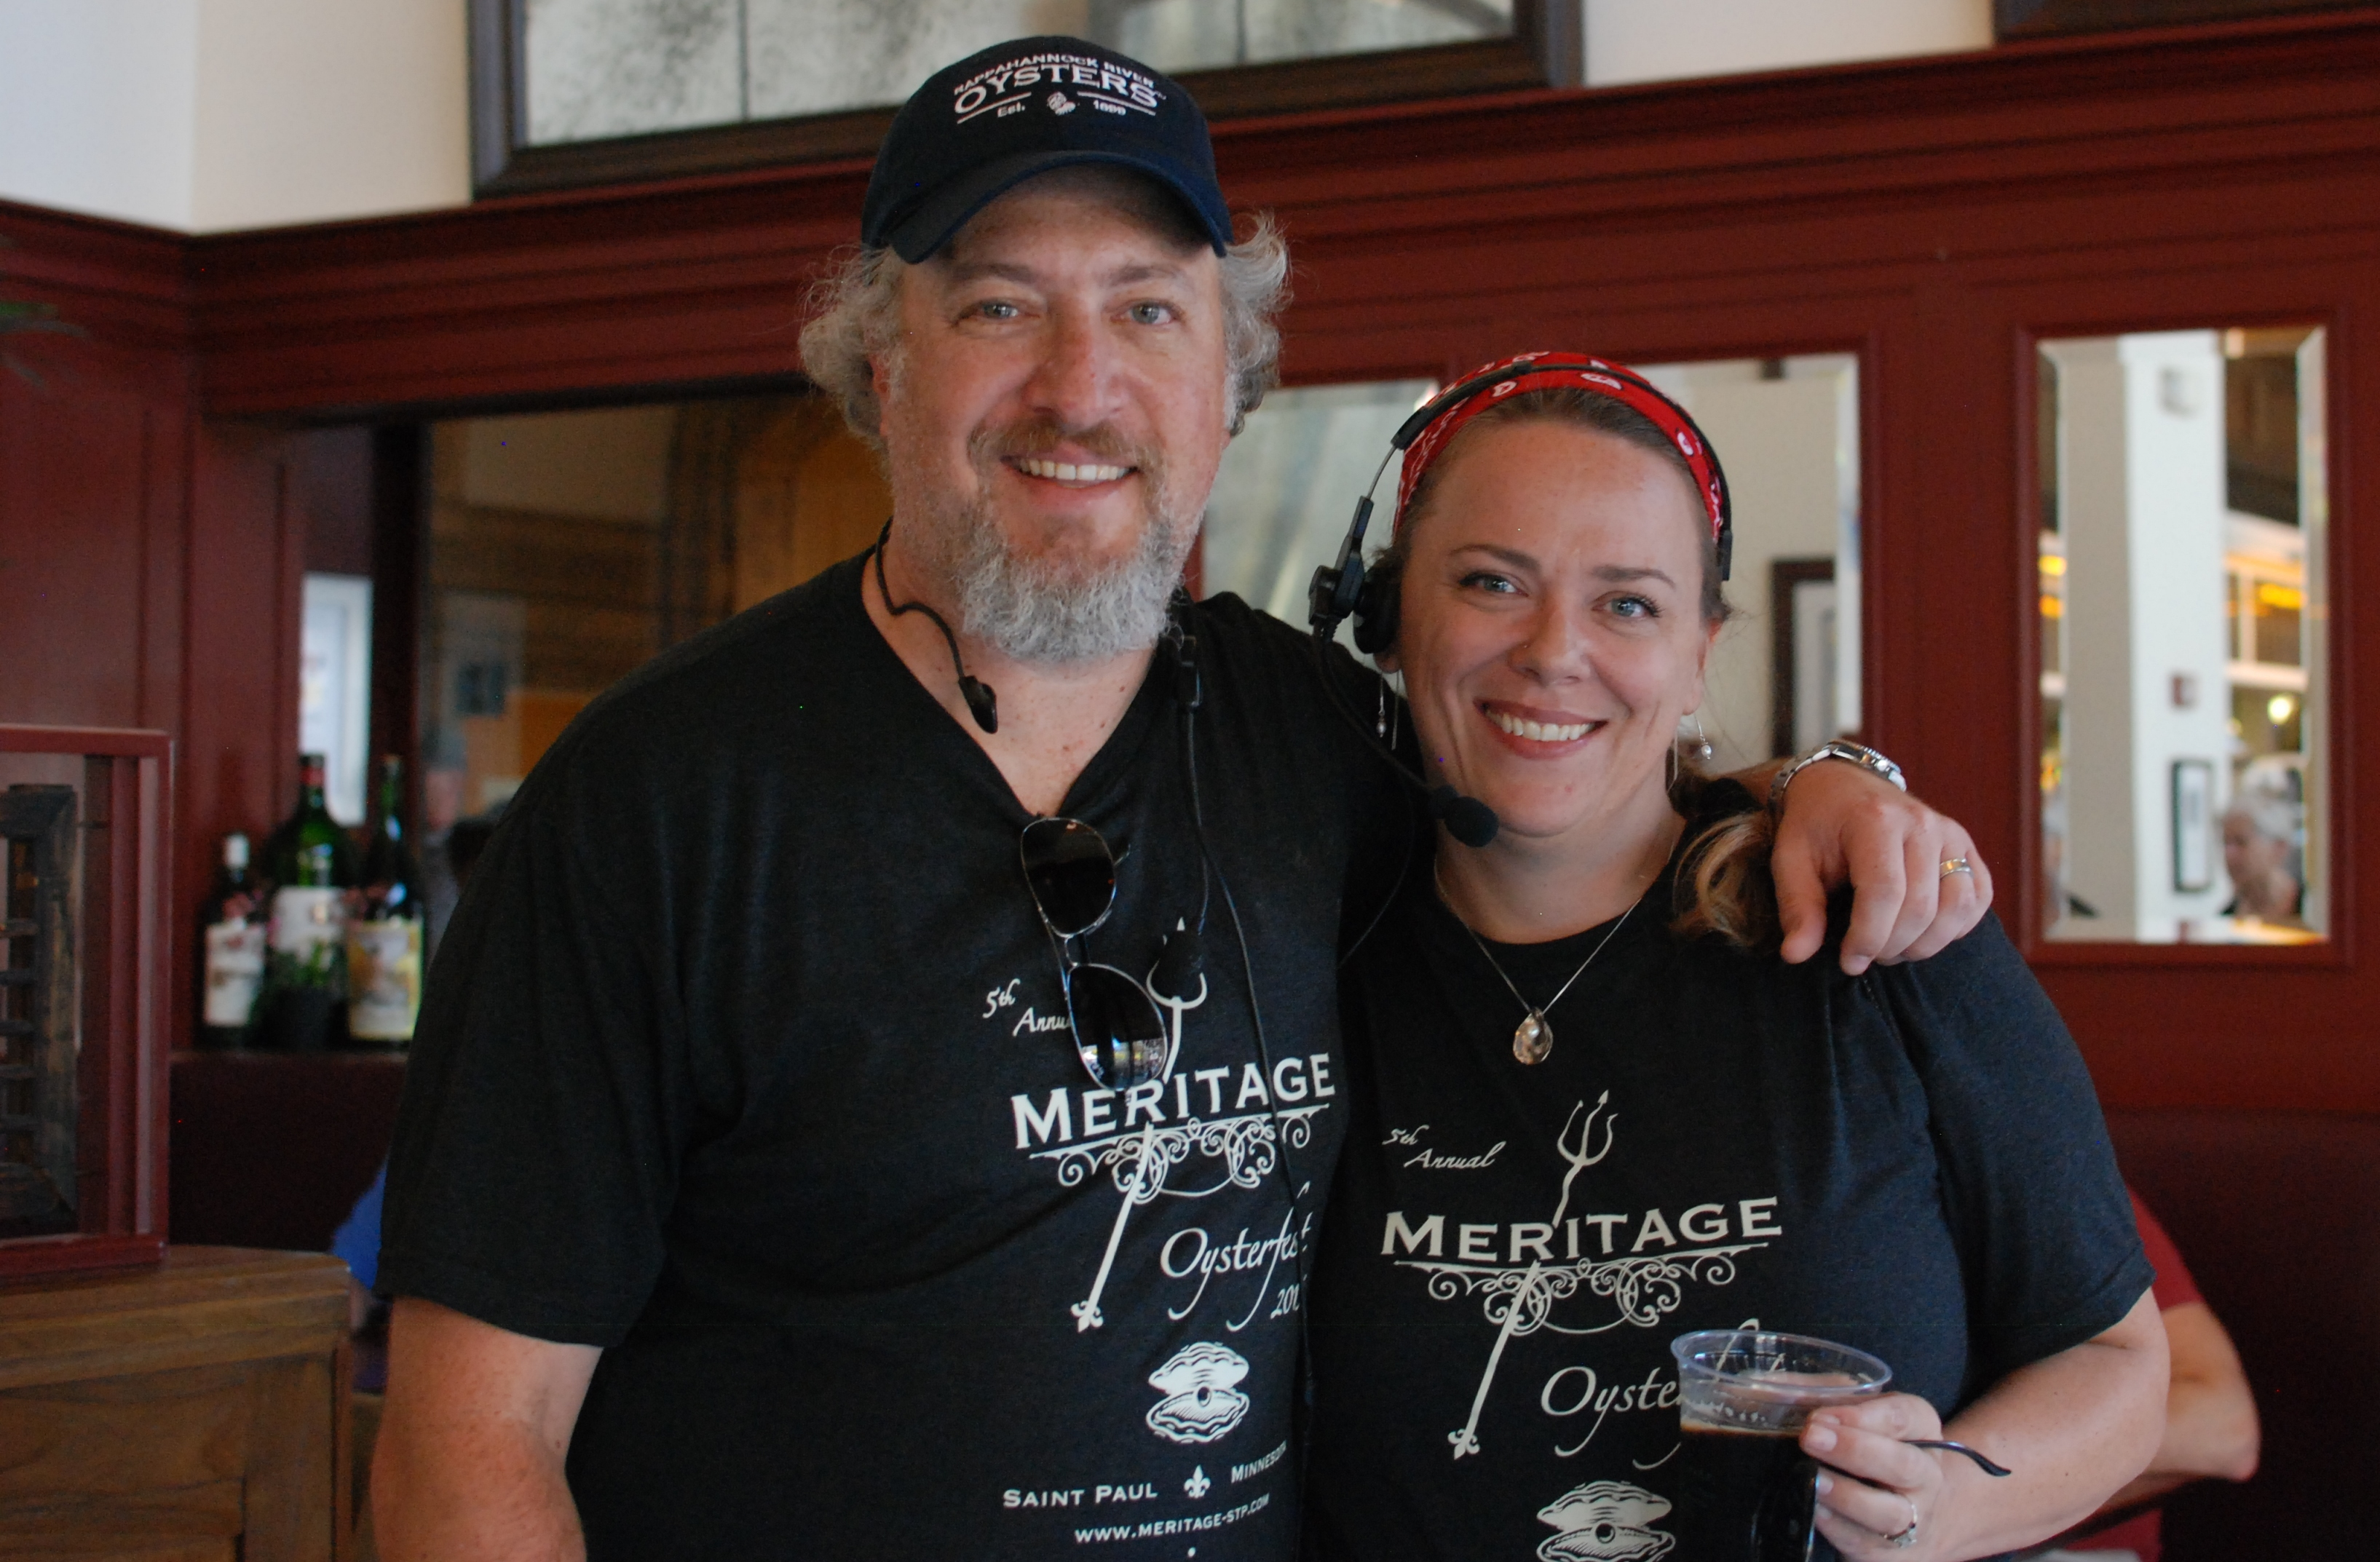 What You Missed at This Year's Meritage Oysterfest 2015